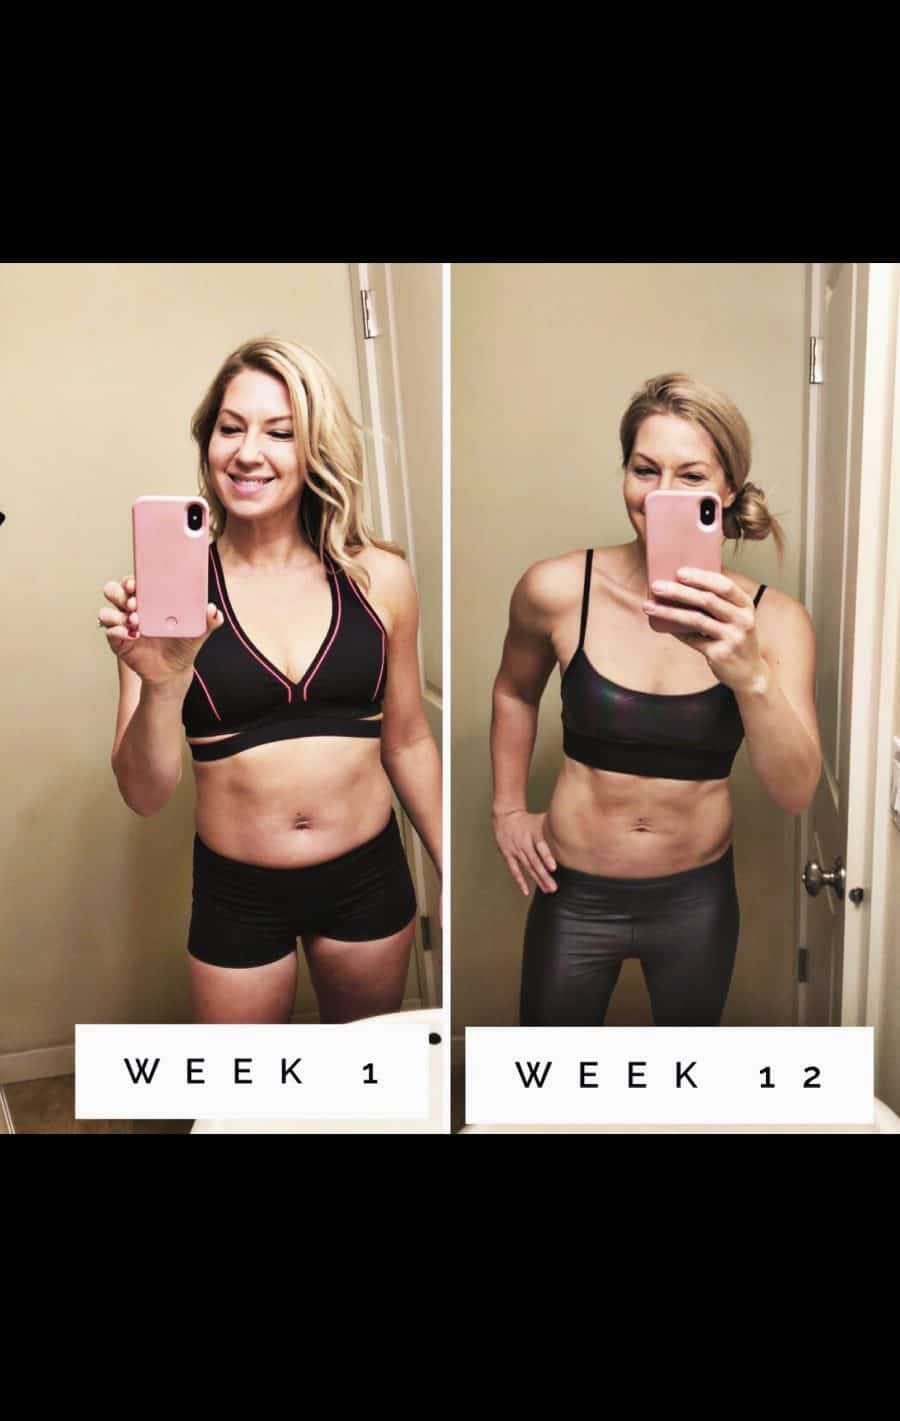 Week Twelve Review Of 80 Day Obsession, 80 day obsession, 80 day obsession review, 80 day obsession fit mom, Fit mom 80 day obsession, Best 80 day obsession transformation, 80 day obsession transformation, 80 day obsession mom, 80 day obsession moms, Review of 80 day obsession, Lose weight with 80 day obsession, How 80 day obsession works